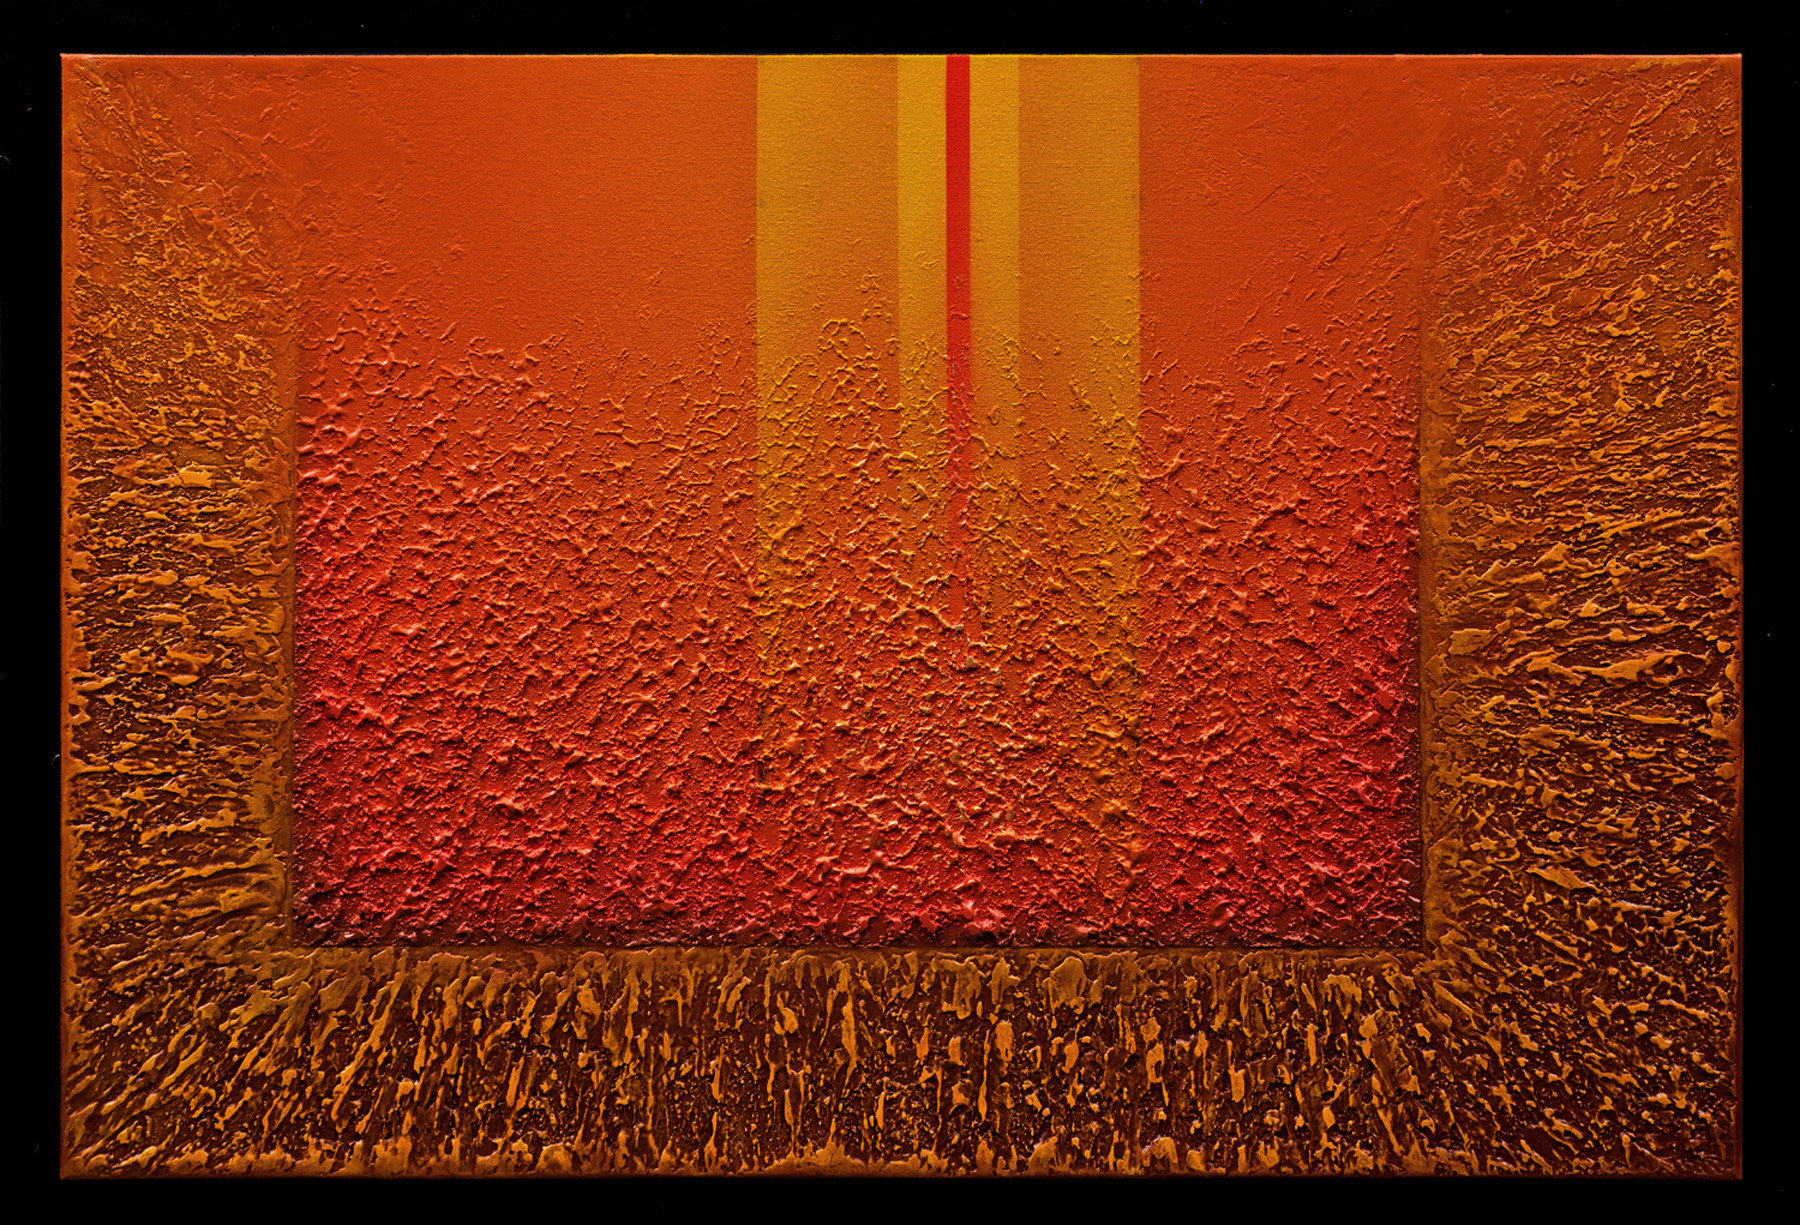 Radiant Textures Series 12 By Wolfgang Gersch Acrylic